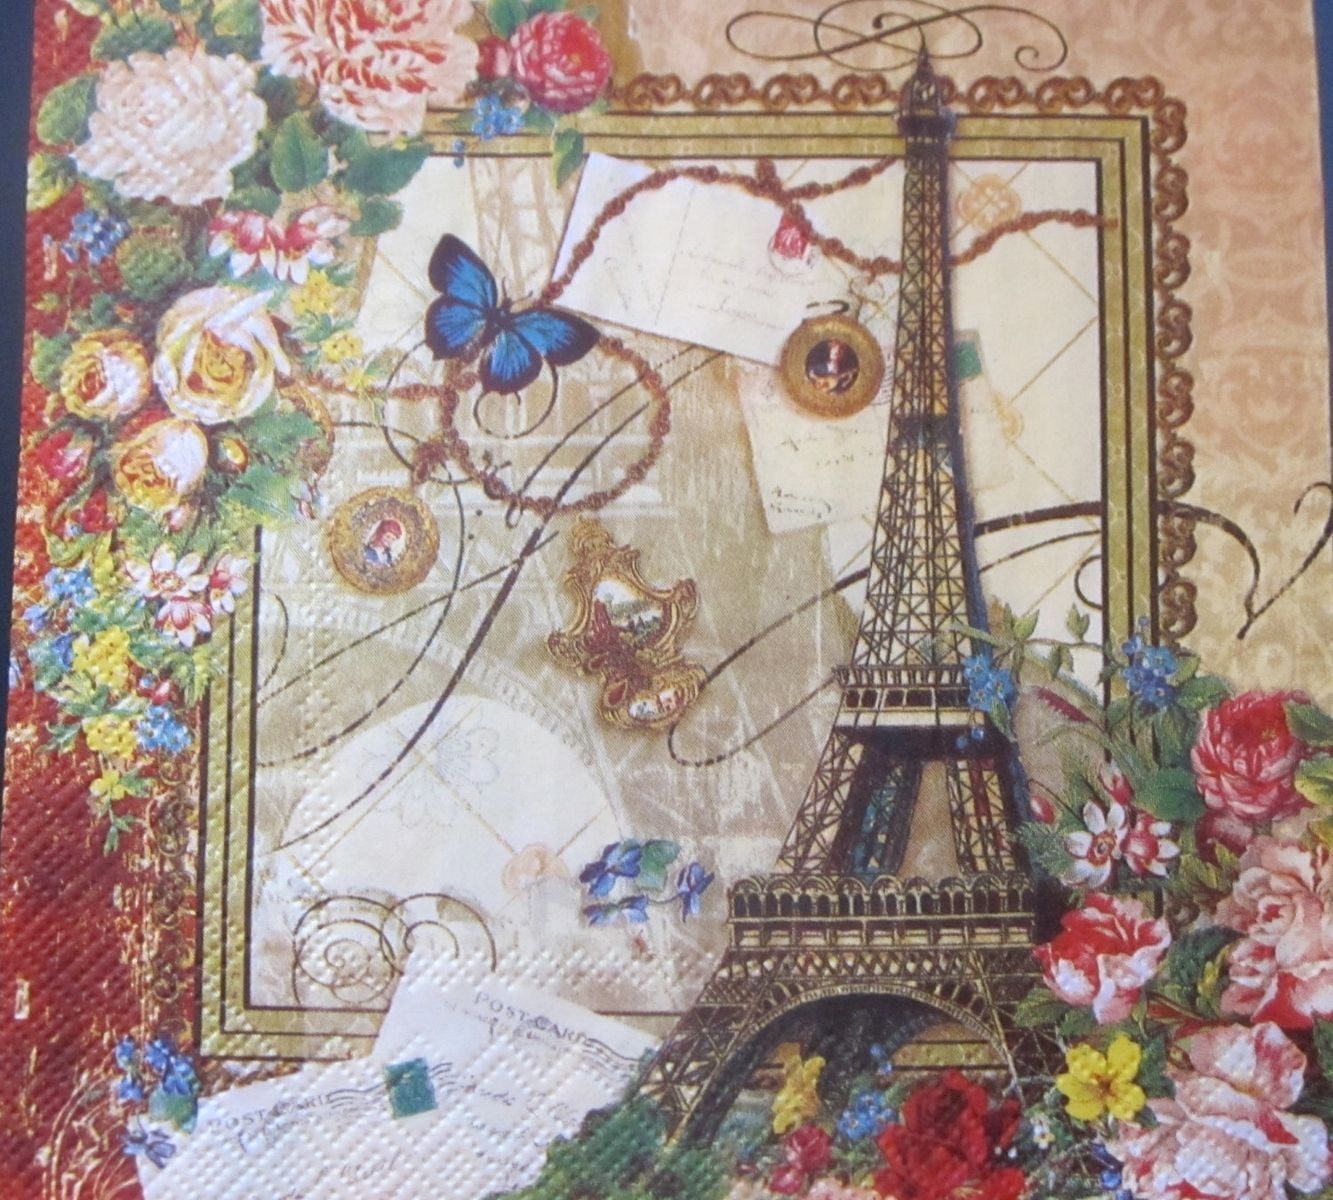 hand crafted love paris paper napkins decoupage scrapbooking supplies art by inapkined. Black Bedroom Furniture Sets. Home Design Ideas